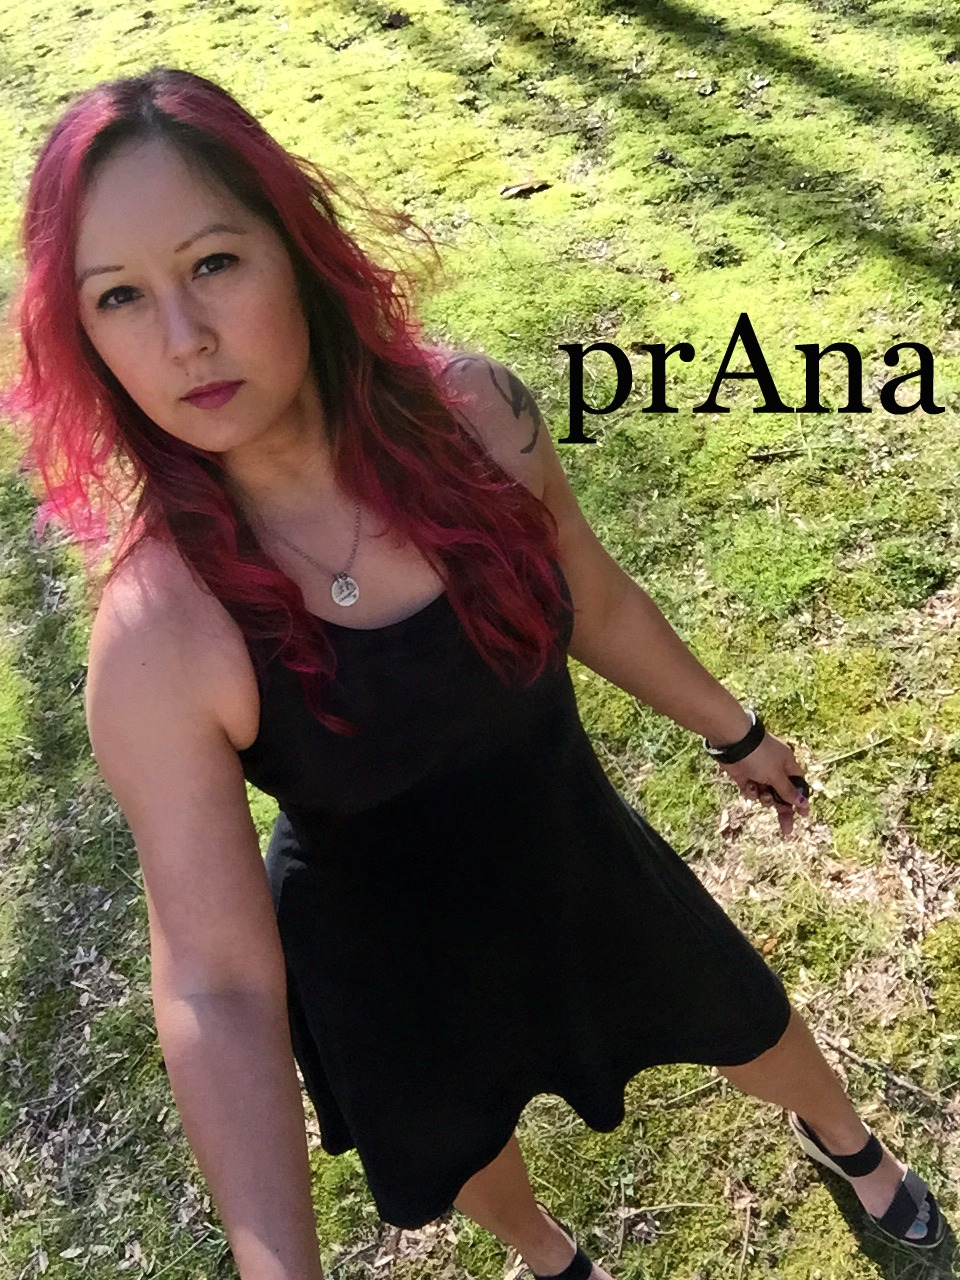 prAna review cali dress